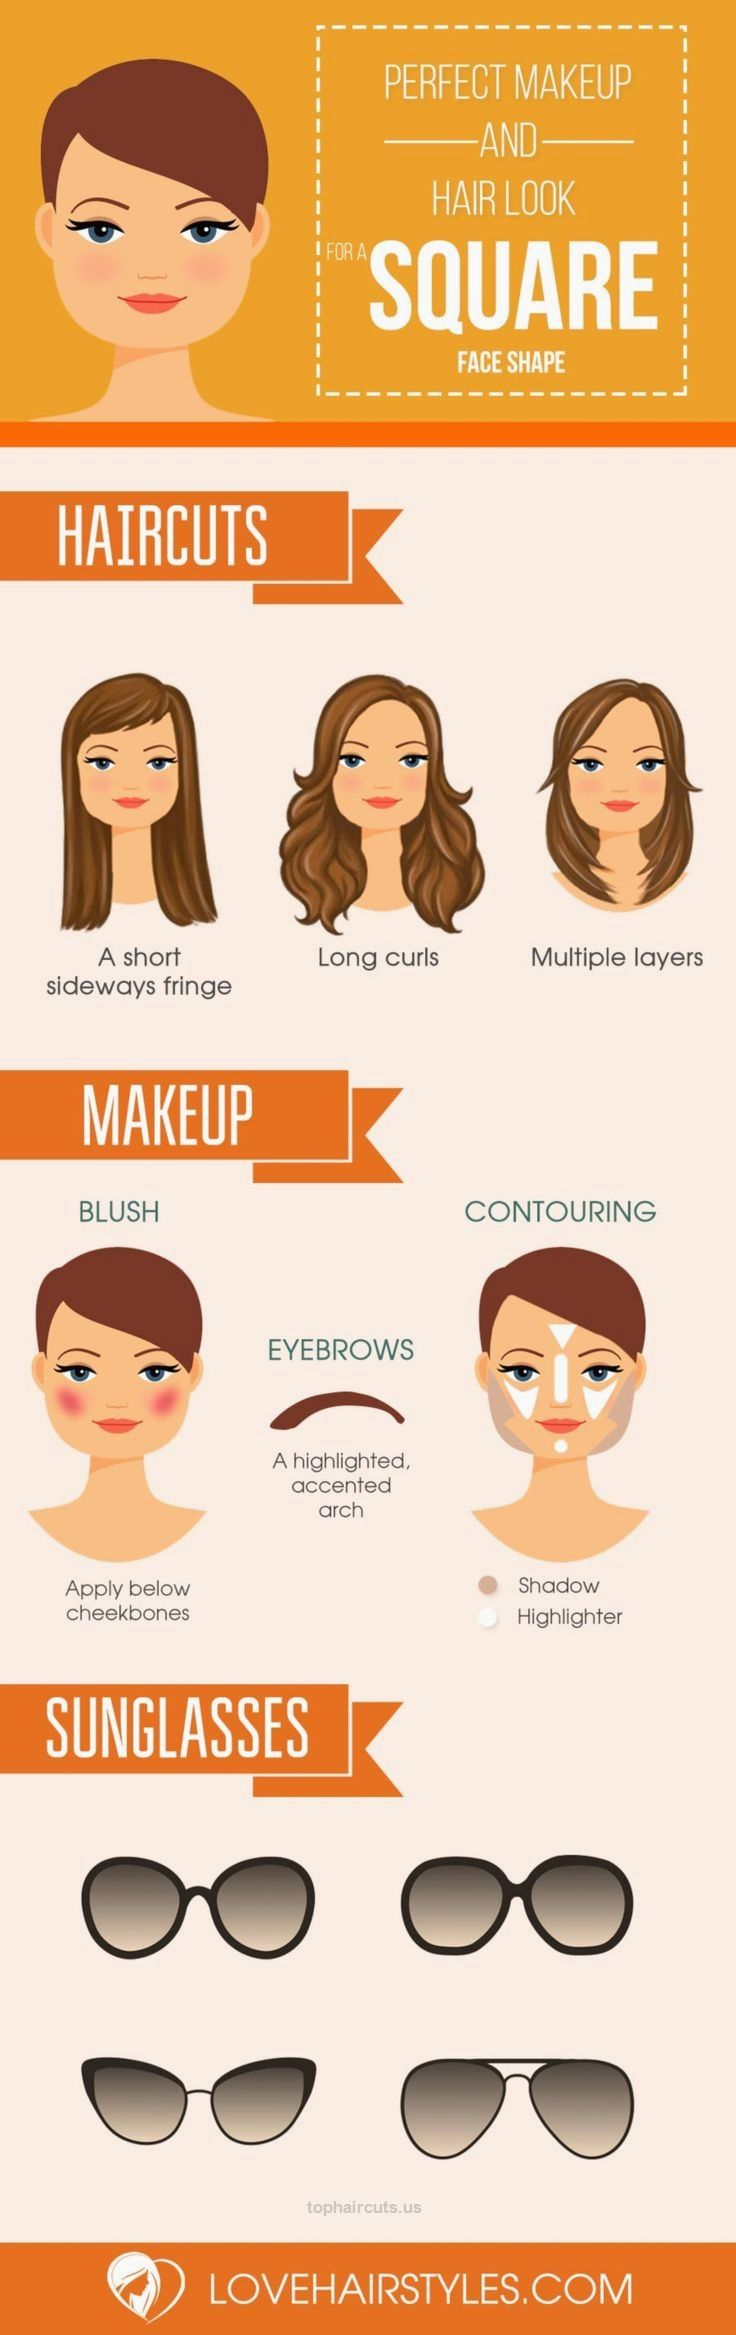 Hairstyles for Square Faces to Try in 2017. If you wonder which hairstyles for s… Hairstyles for Square Faces to Try in 2017. If you wonder which hairstyles for square faces are most flattering, you should opt for a style that s ..  http://www.tophaircuts.us/2017/05/02/hairstyles-for-square-faces-to-try-in-2017-if-you-wonder-which-hairstyles-for-s/